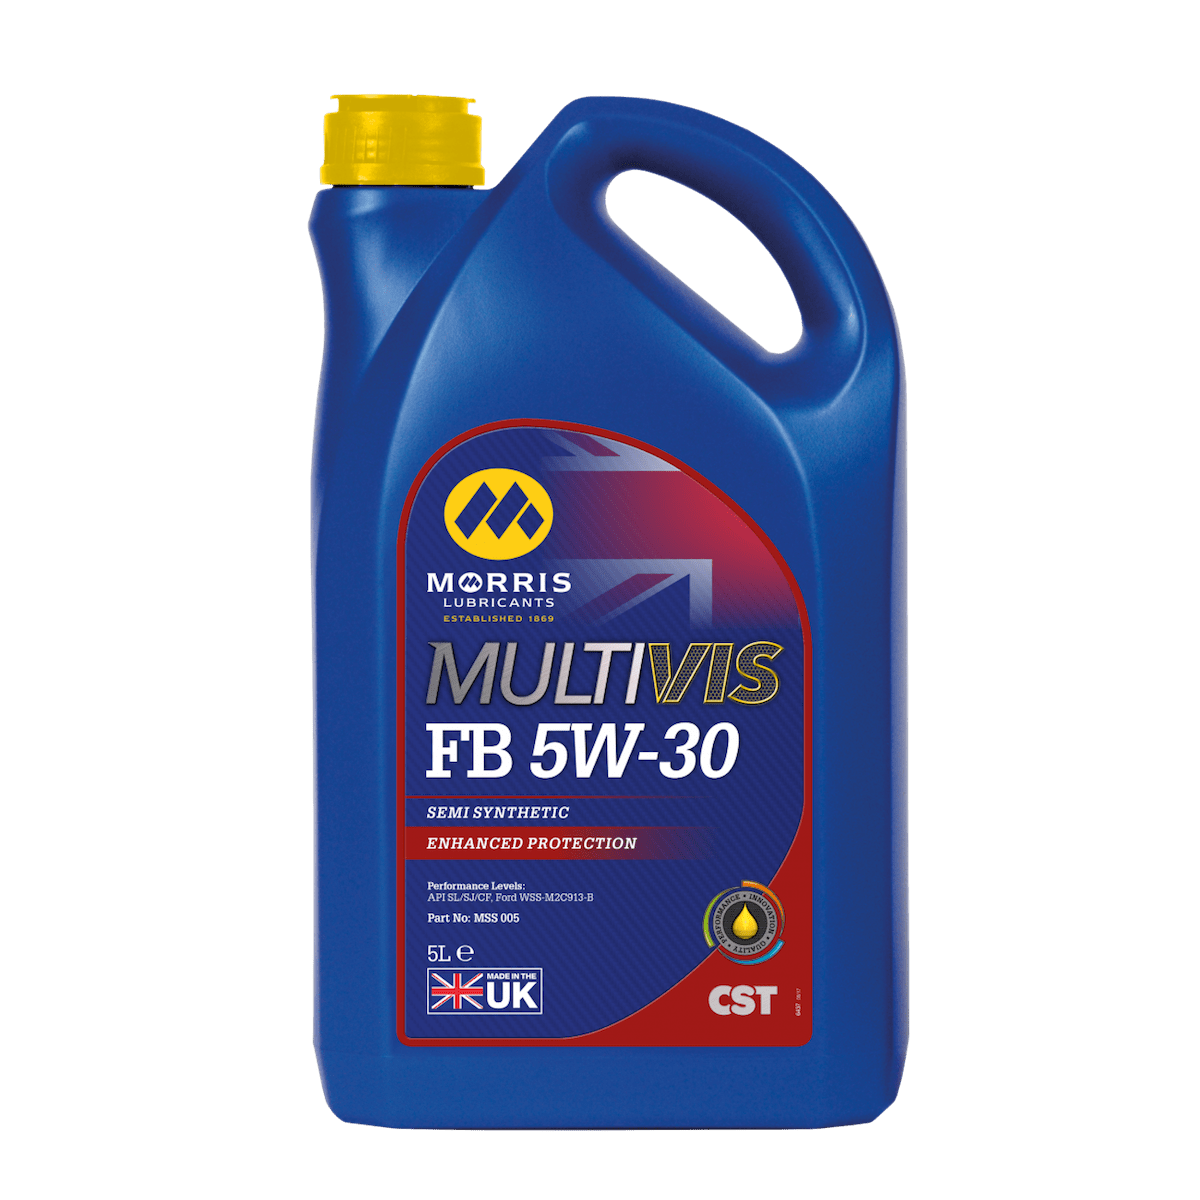 Multivis CST FB 5W-30 (Previously Multivis Semi Synthetic 5W-30)